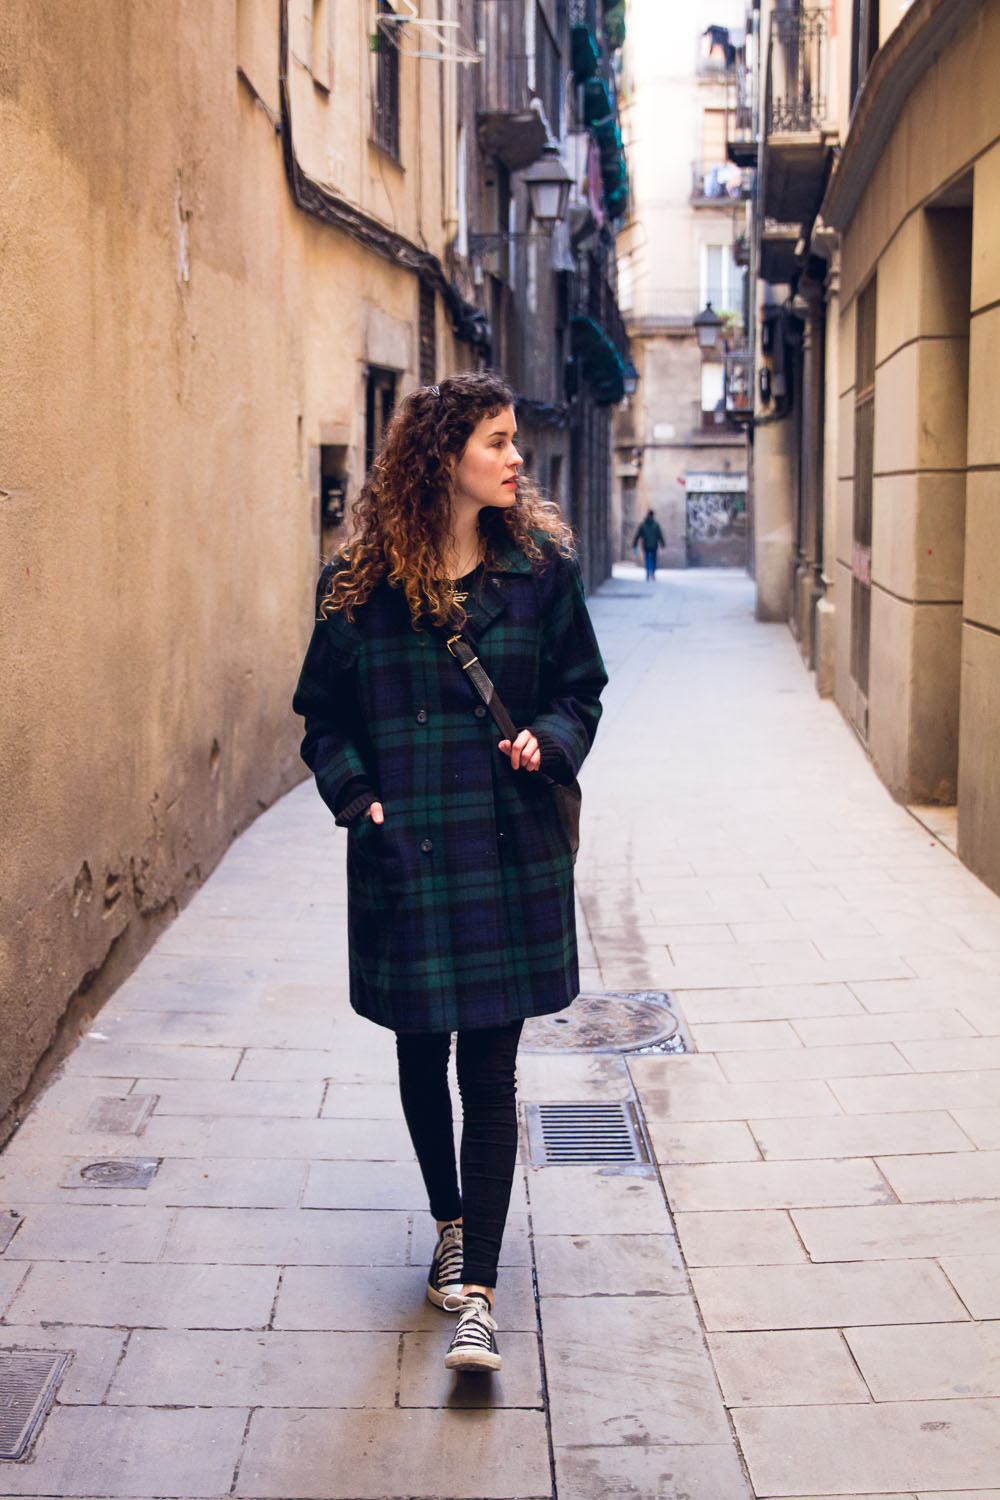 barcelona outfit 2 (5 of 8)